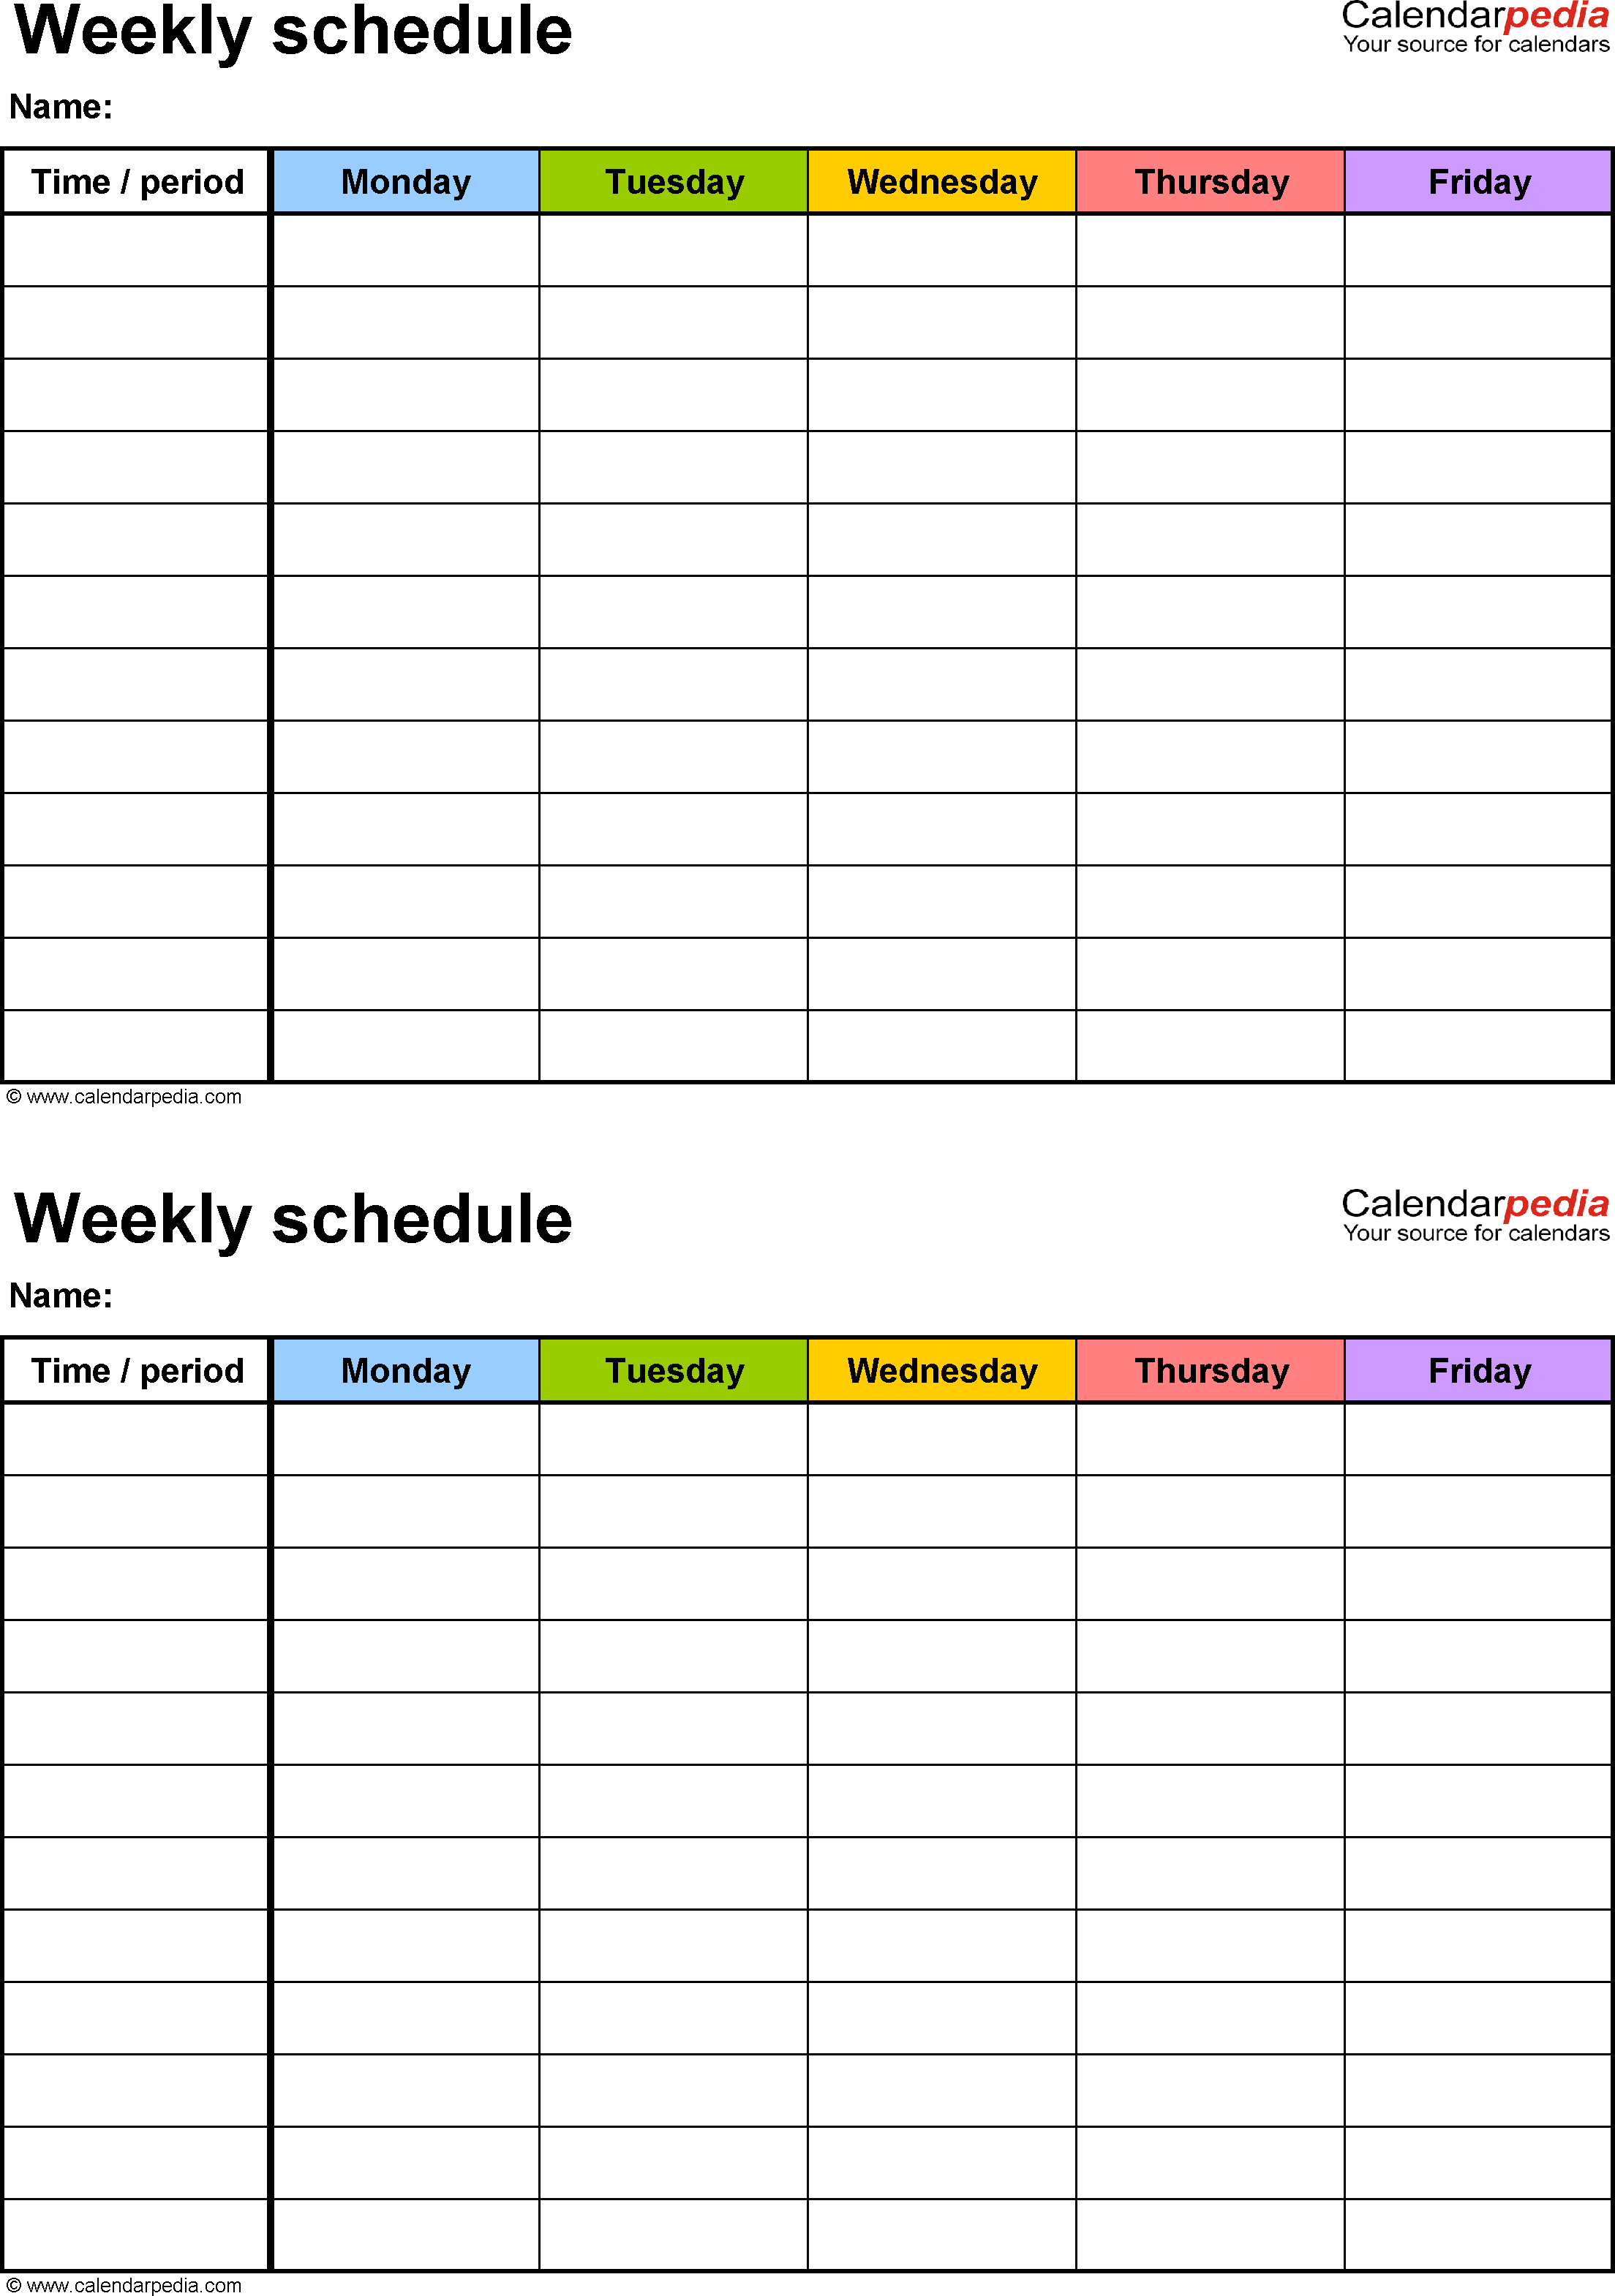 online daily schedule maker koni polycode co